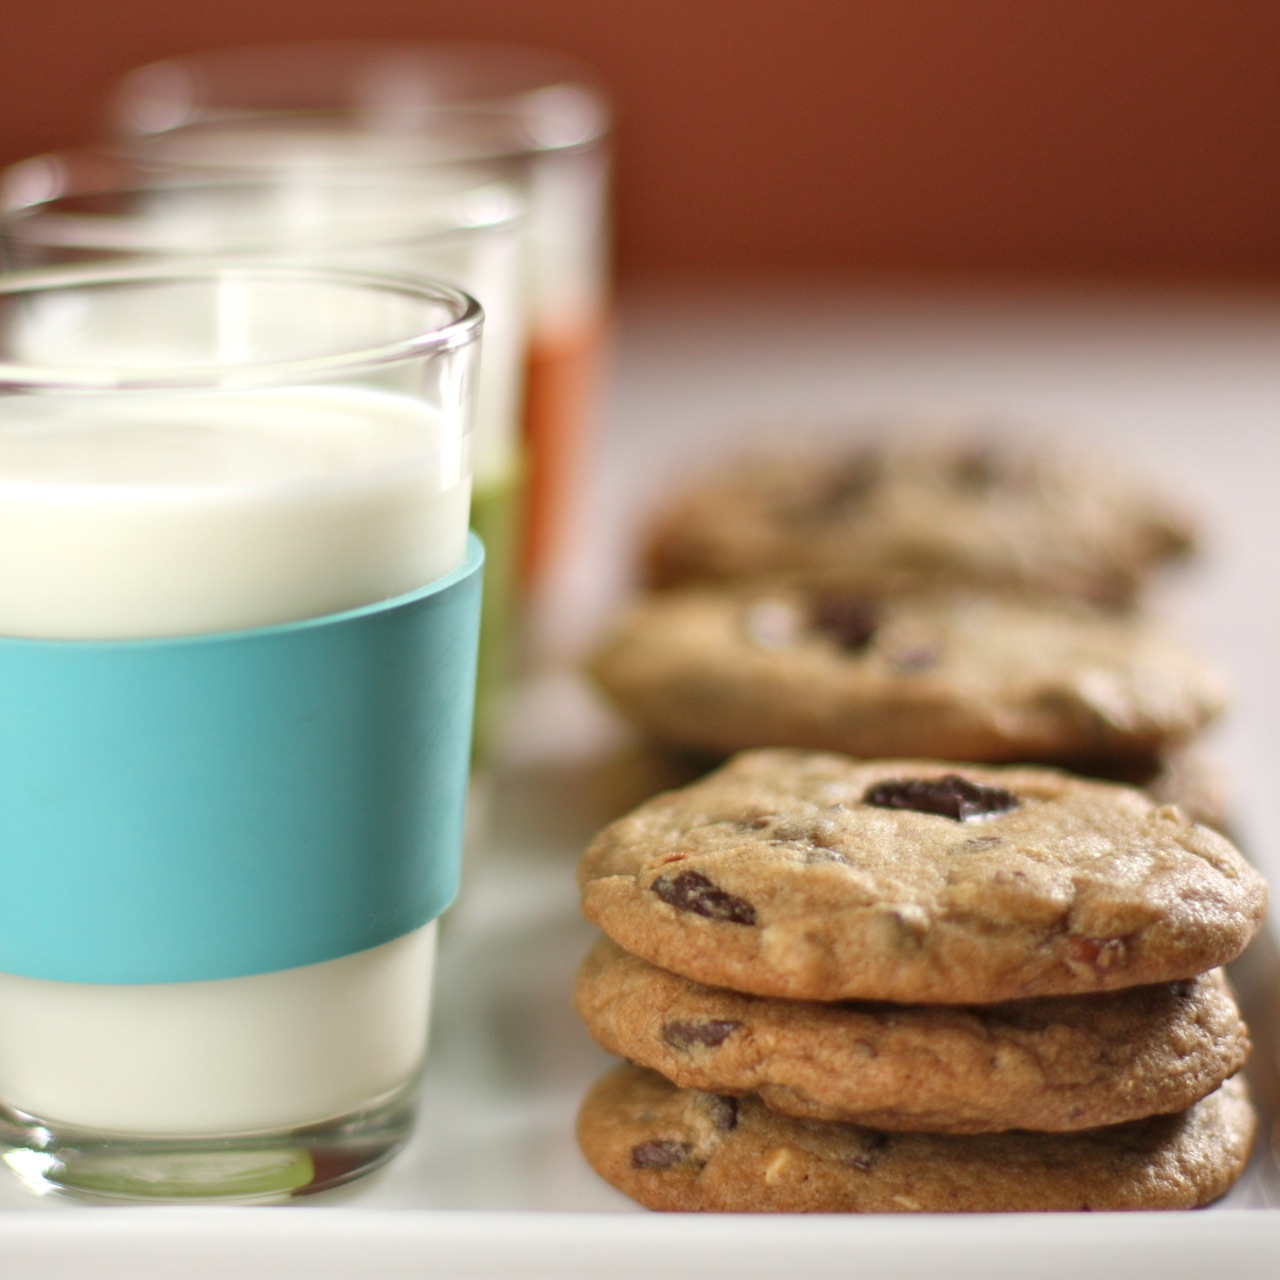 I Really Set Out To Make These Classic Chocolate Chip Cookie Recipe From Jacques Torres